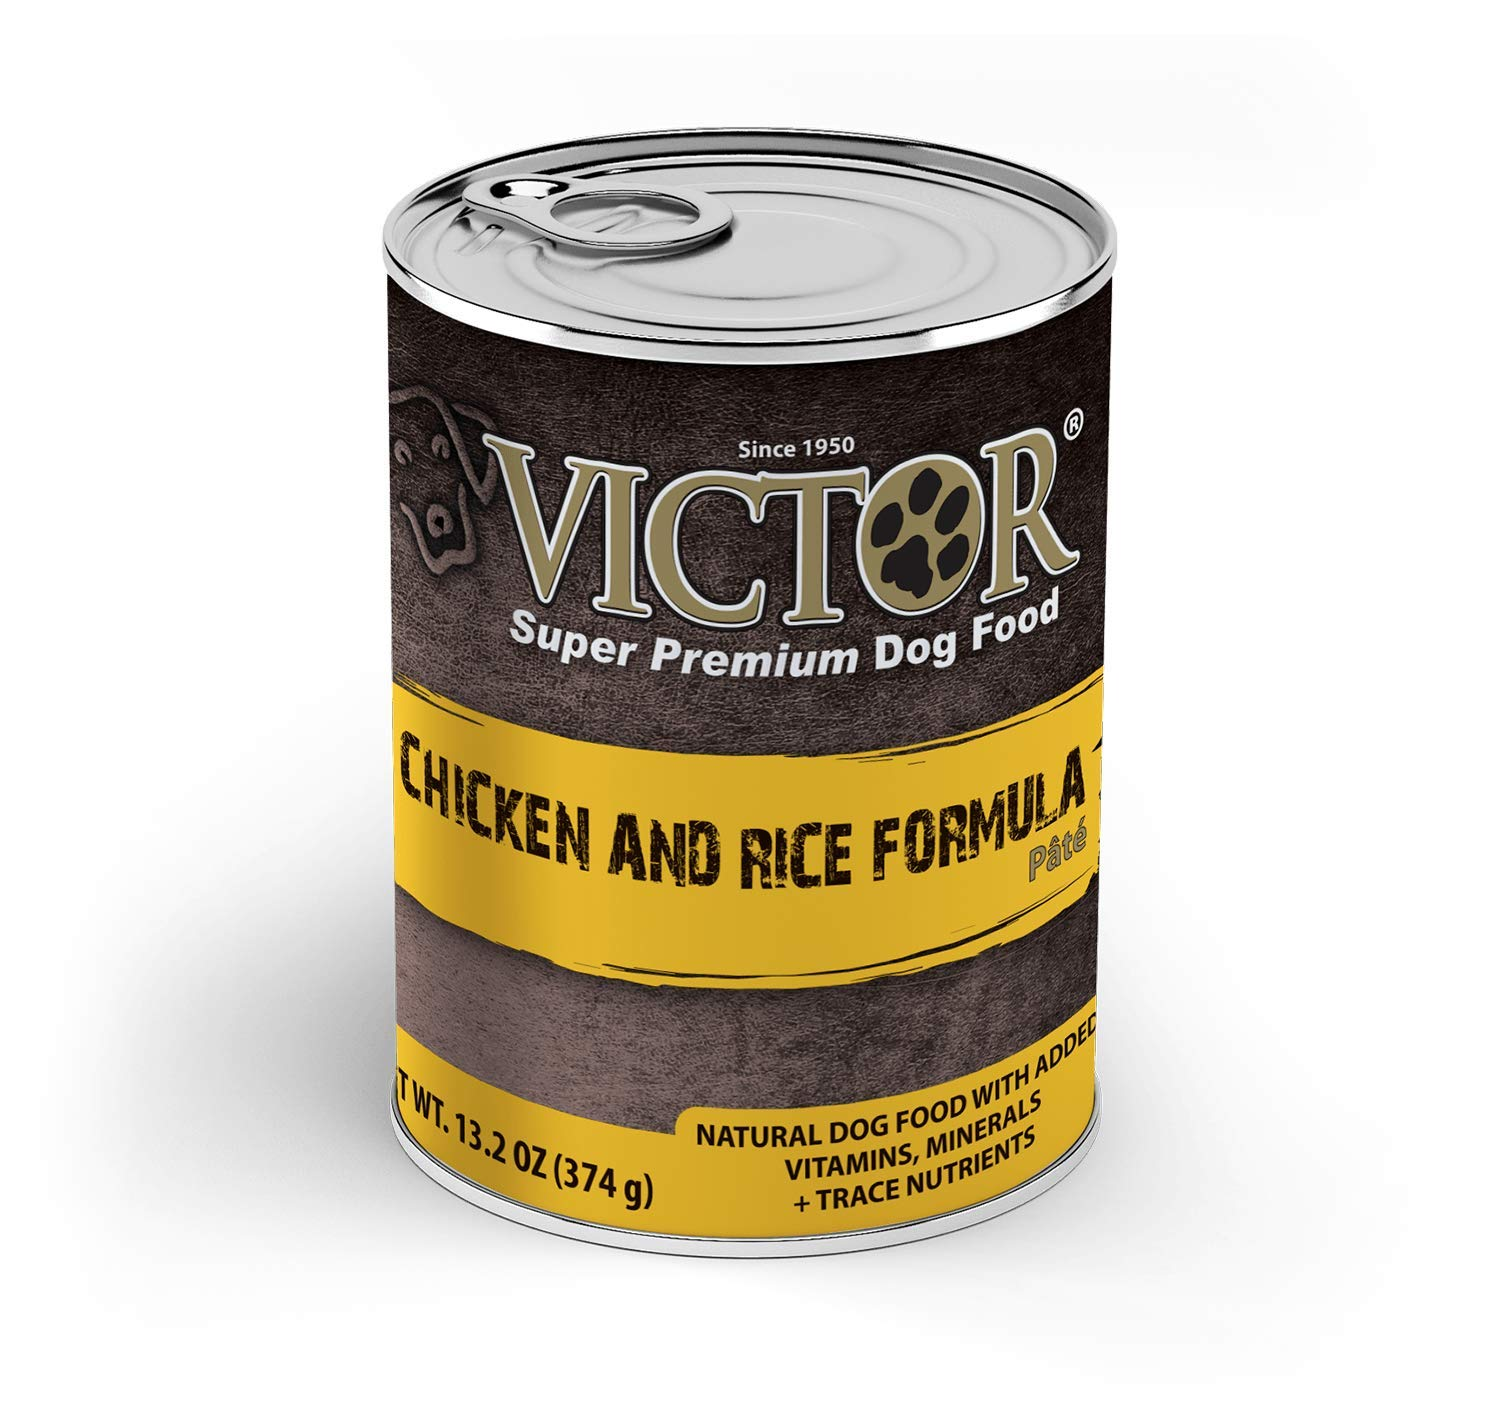 Victor Chicken Rice Formula Pate Dog Food – Canned, 12 13.2 Oz. Cans